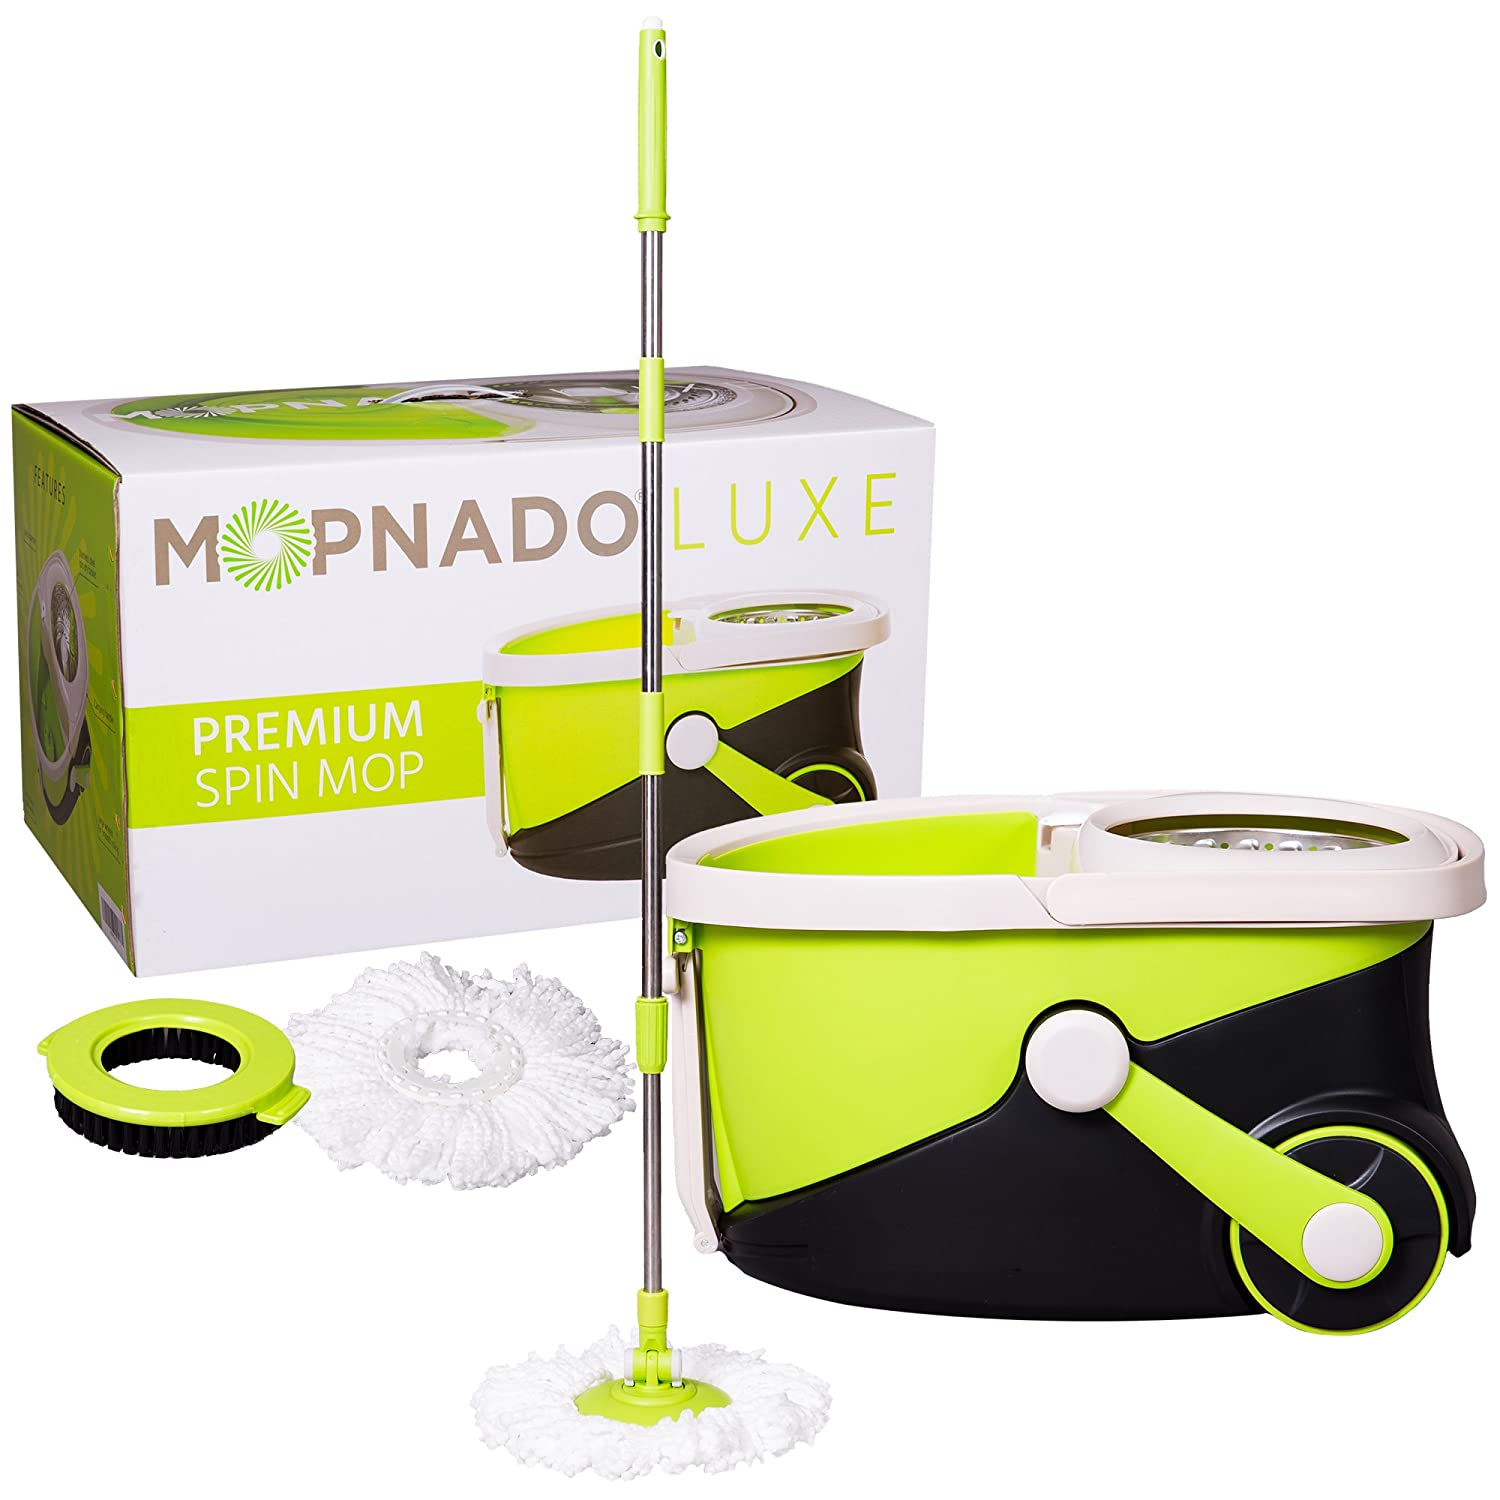 Floor Care & Maintenance: The 8 Best Mops, Mop Sets & Floor Cleaners - Reviewed 2